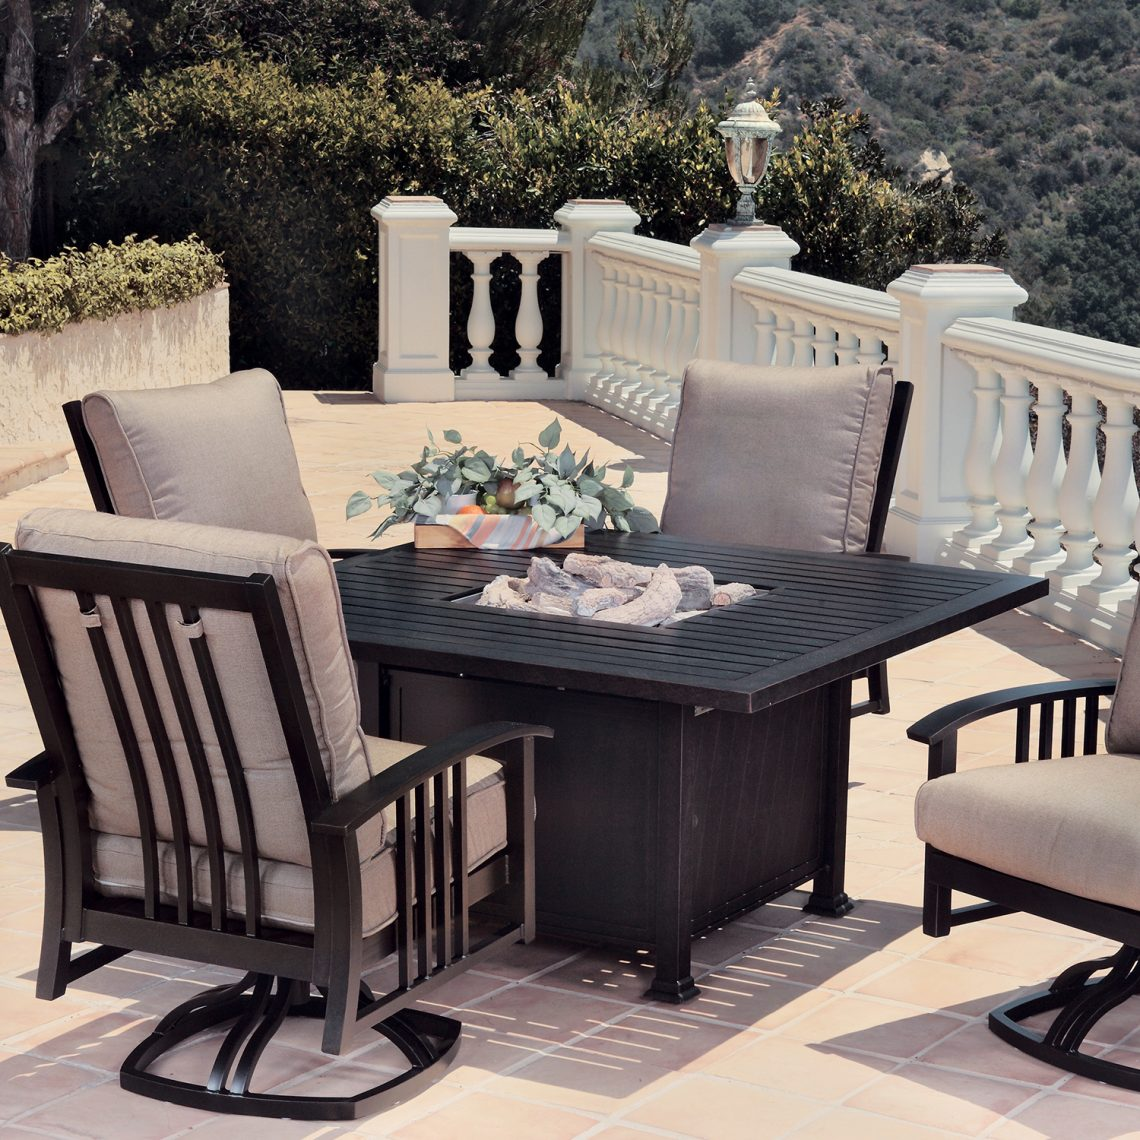 collection garden furniture accessories pictures. Great Selection Of Seasonal Garden \u0026 Patio Accessories At Our La Grange Location Collection Furniture Pictures .